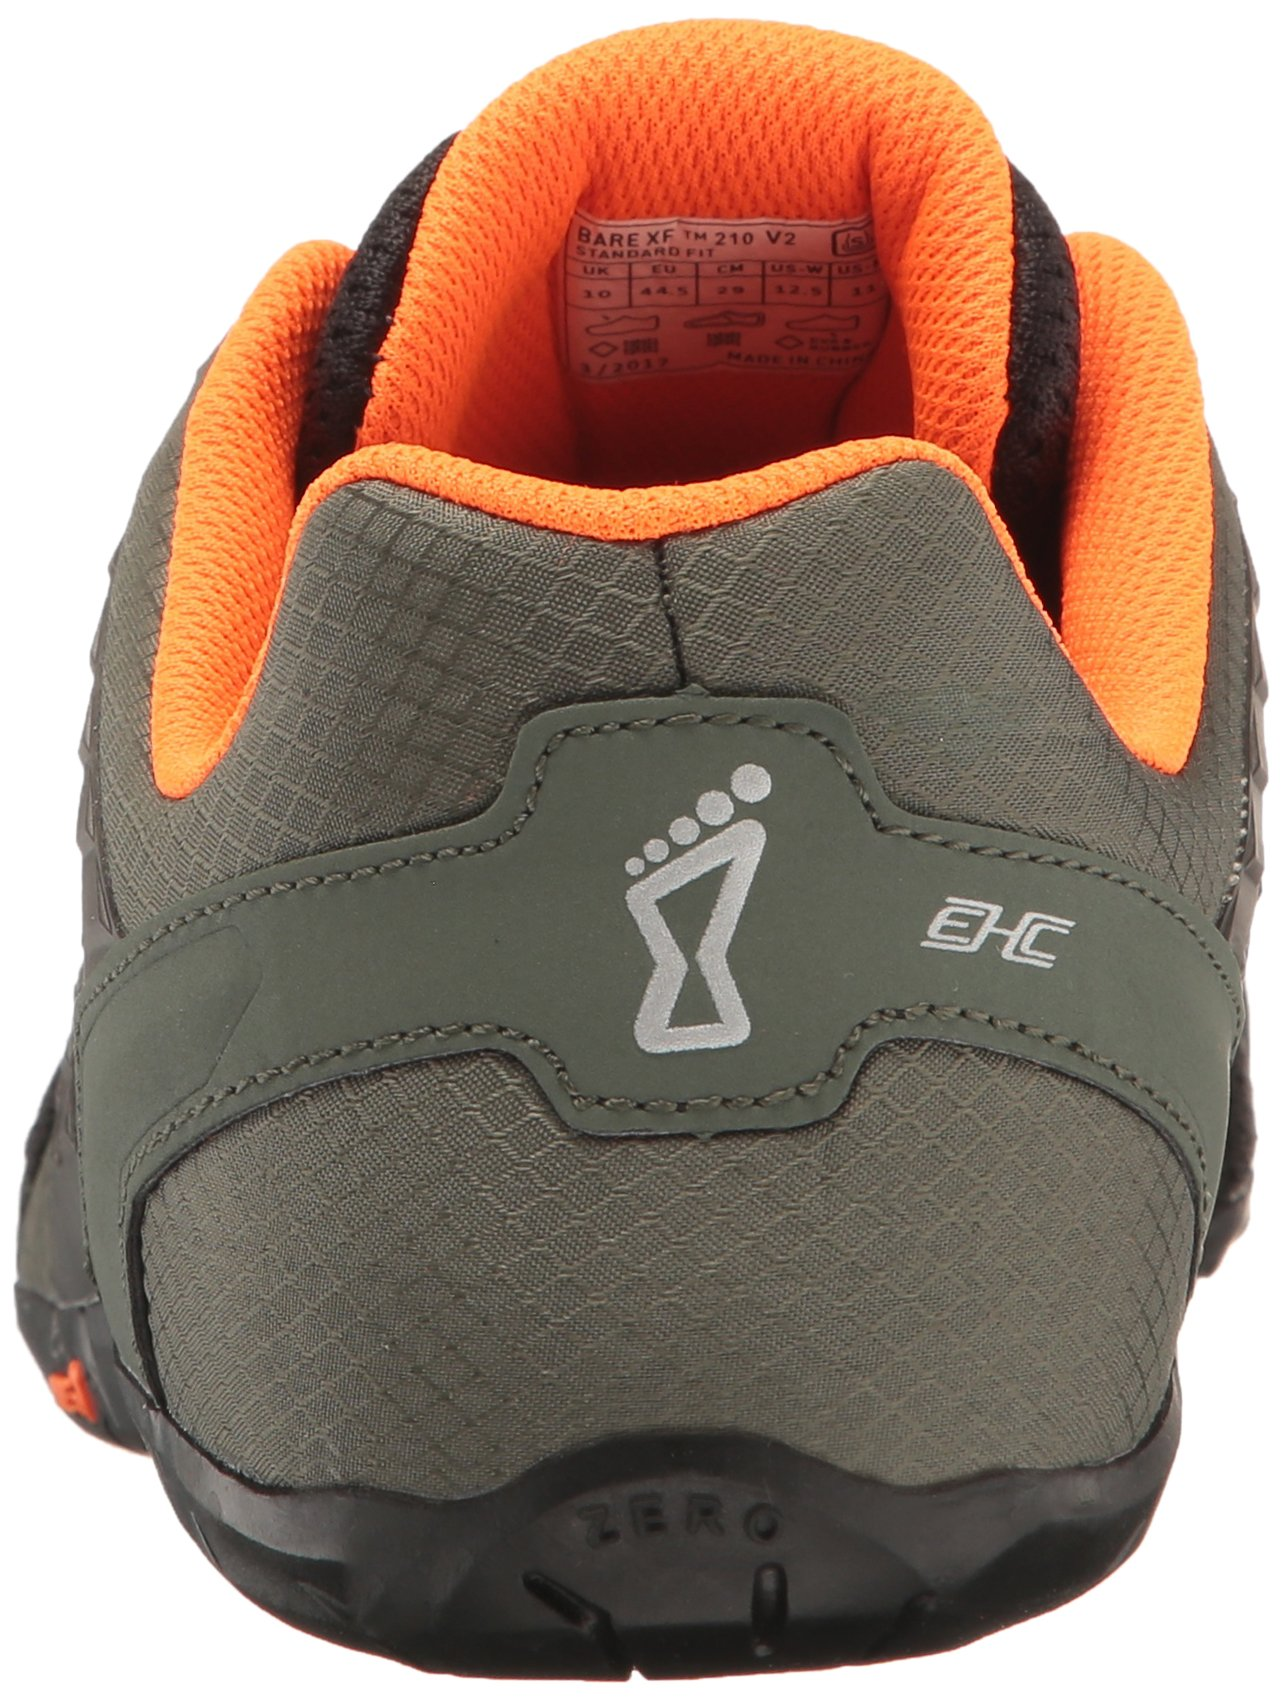 Inov-8 Men's Bare-XF 210 v2 (M) Cross Trainer Grey/Black/Orange 11 D US by Inov-8 (Image #2)